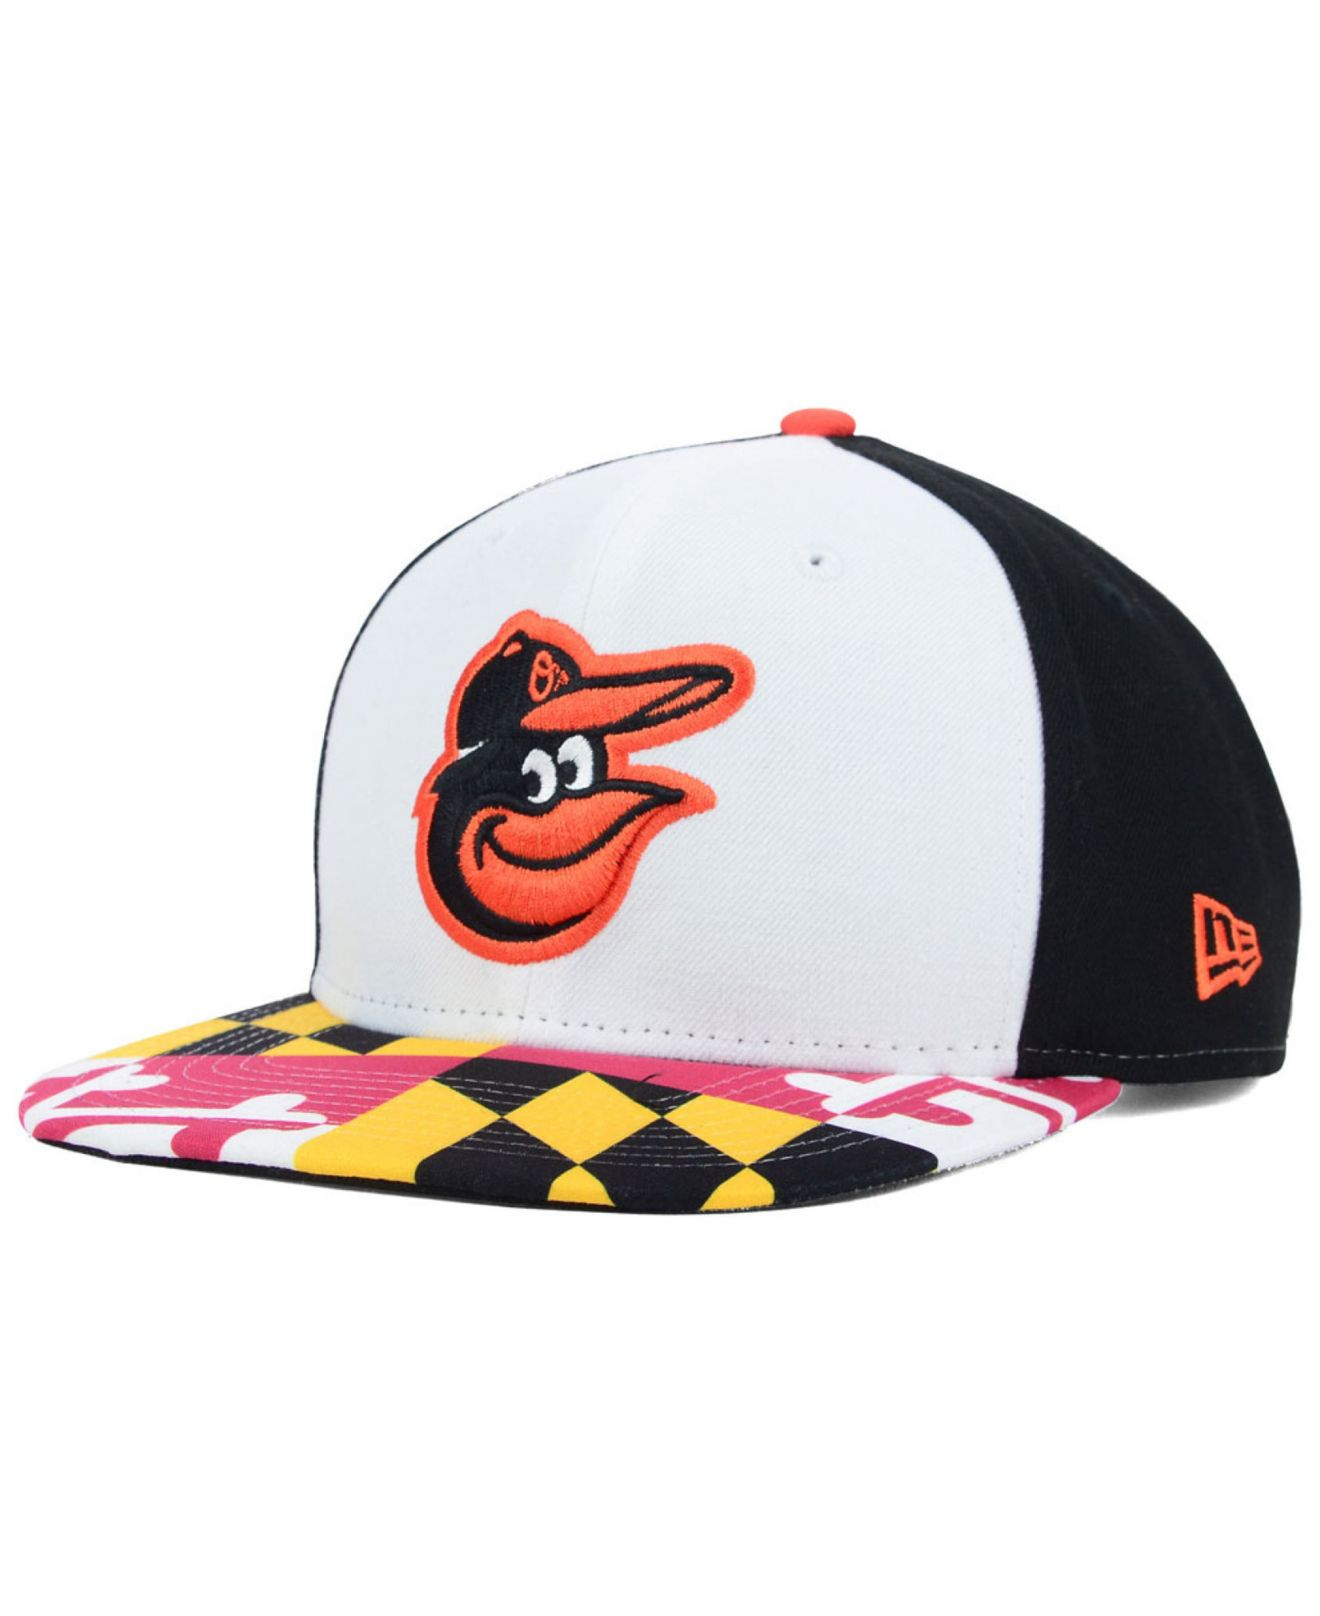 Lyst - KTZ Baltimore Orioles Flag Up 9Fifty Snapback Cap in Black ... 99a64adca935